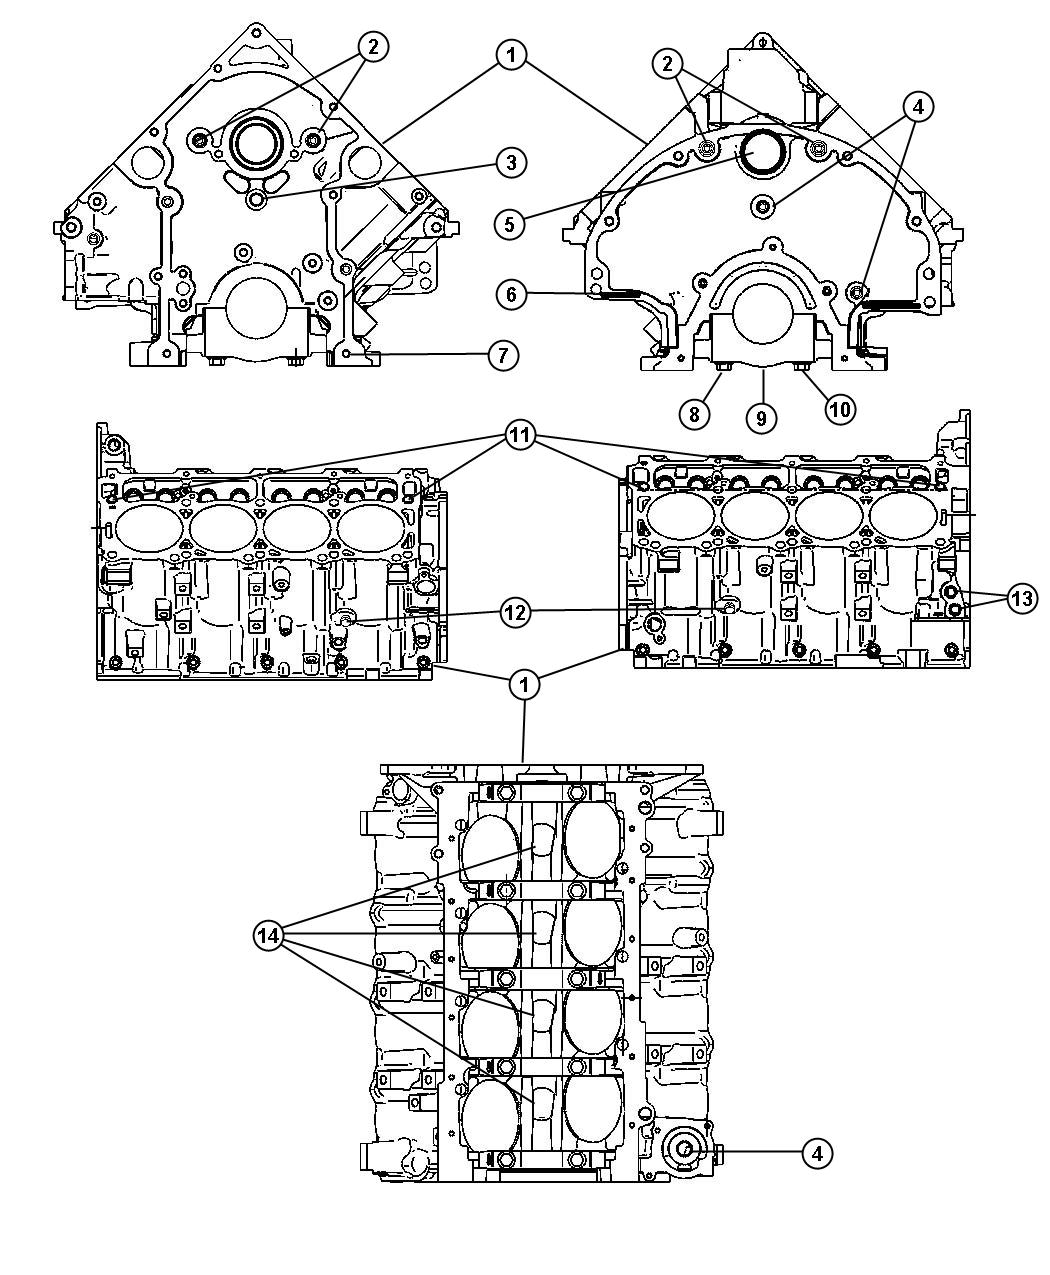 i2255839 Ram Hemi Engine Block Diagram on